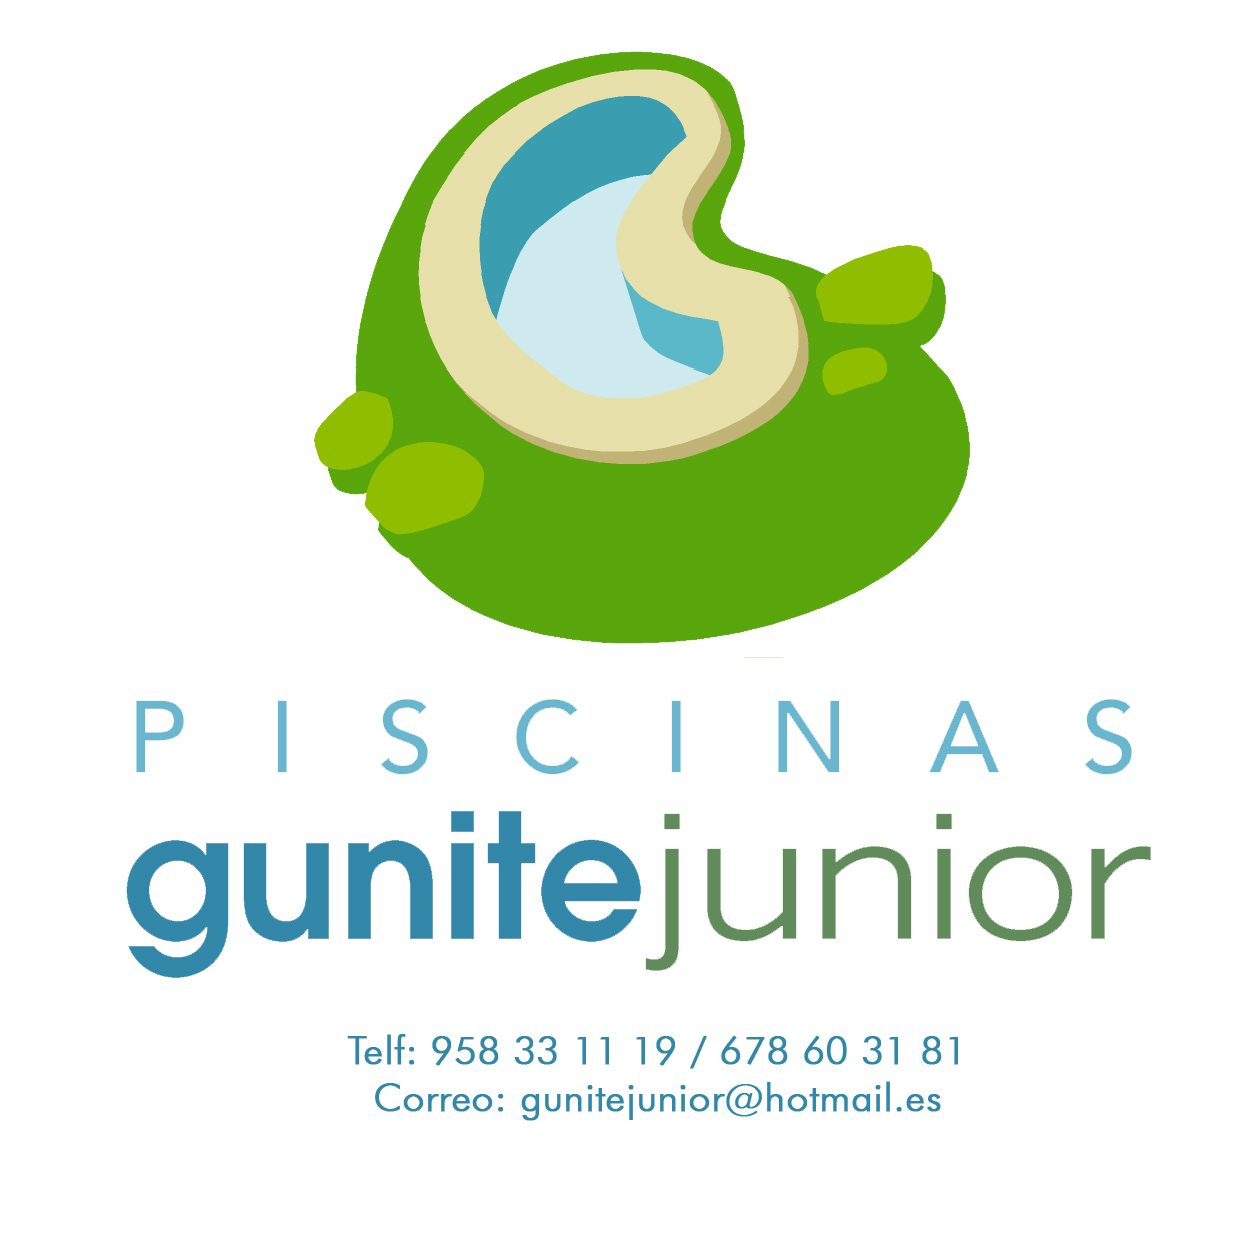 Gunite Junior